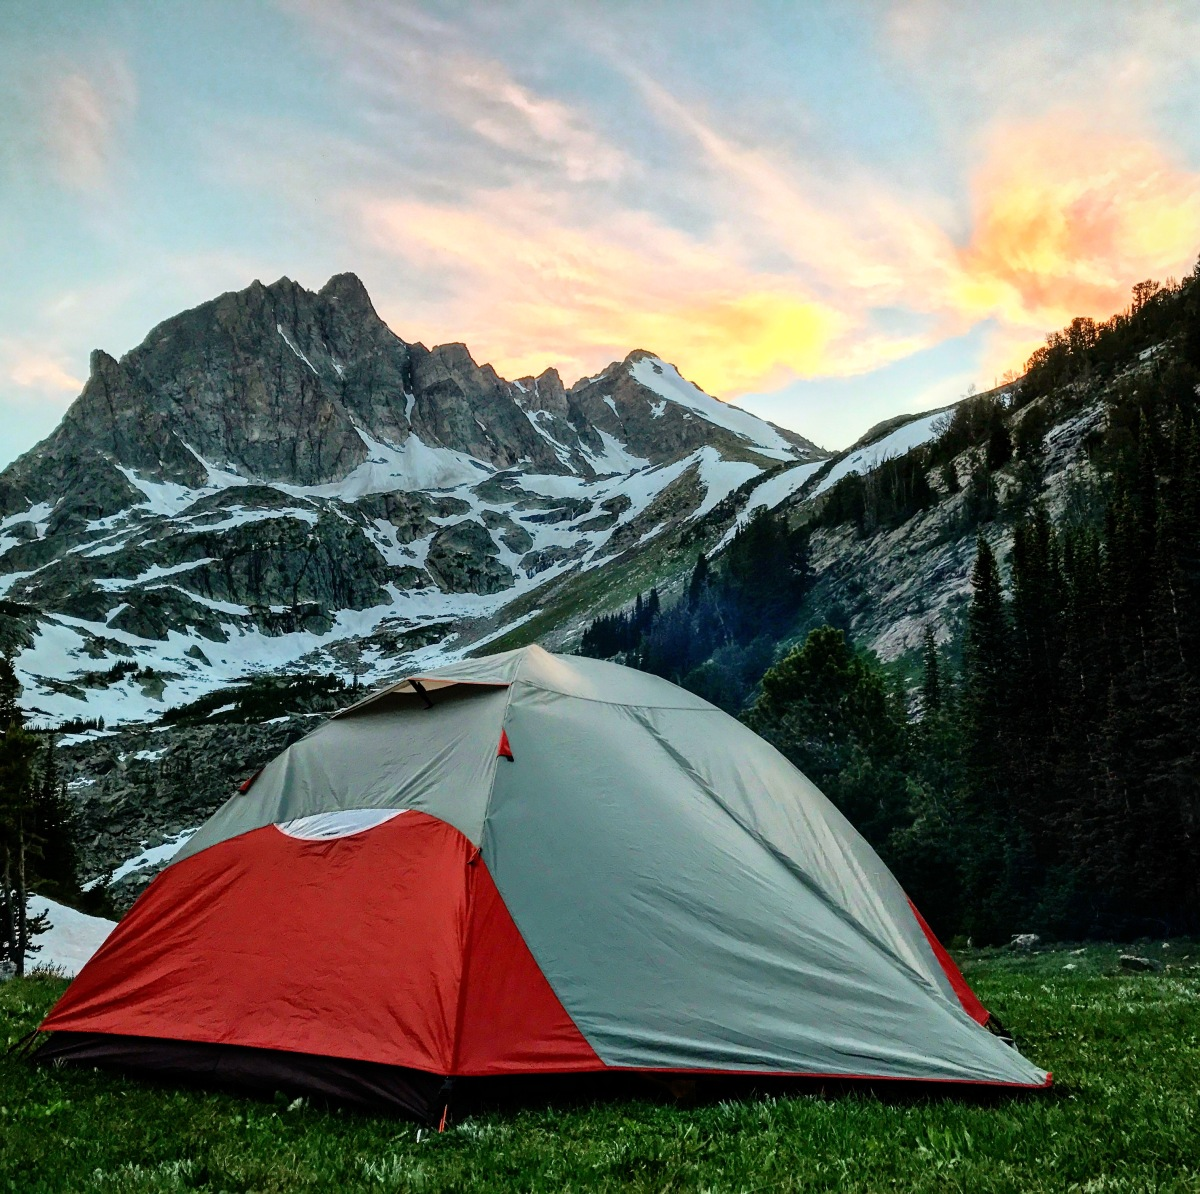 camping under whitetail peak, bear tooth mountains, montana